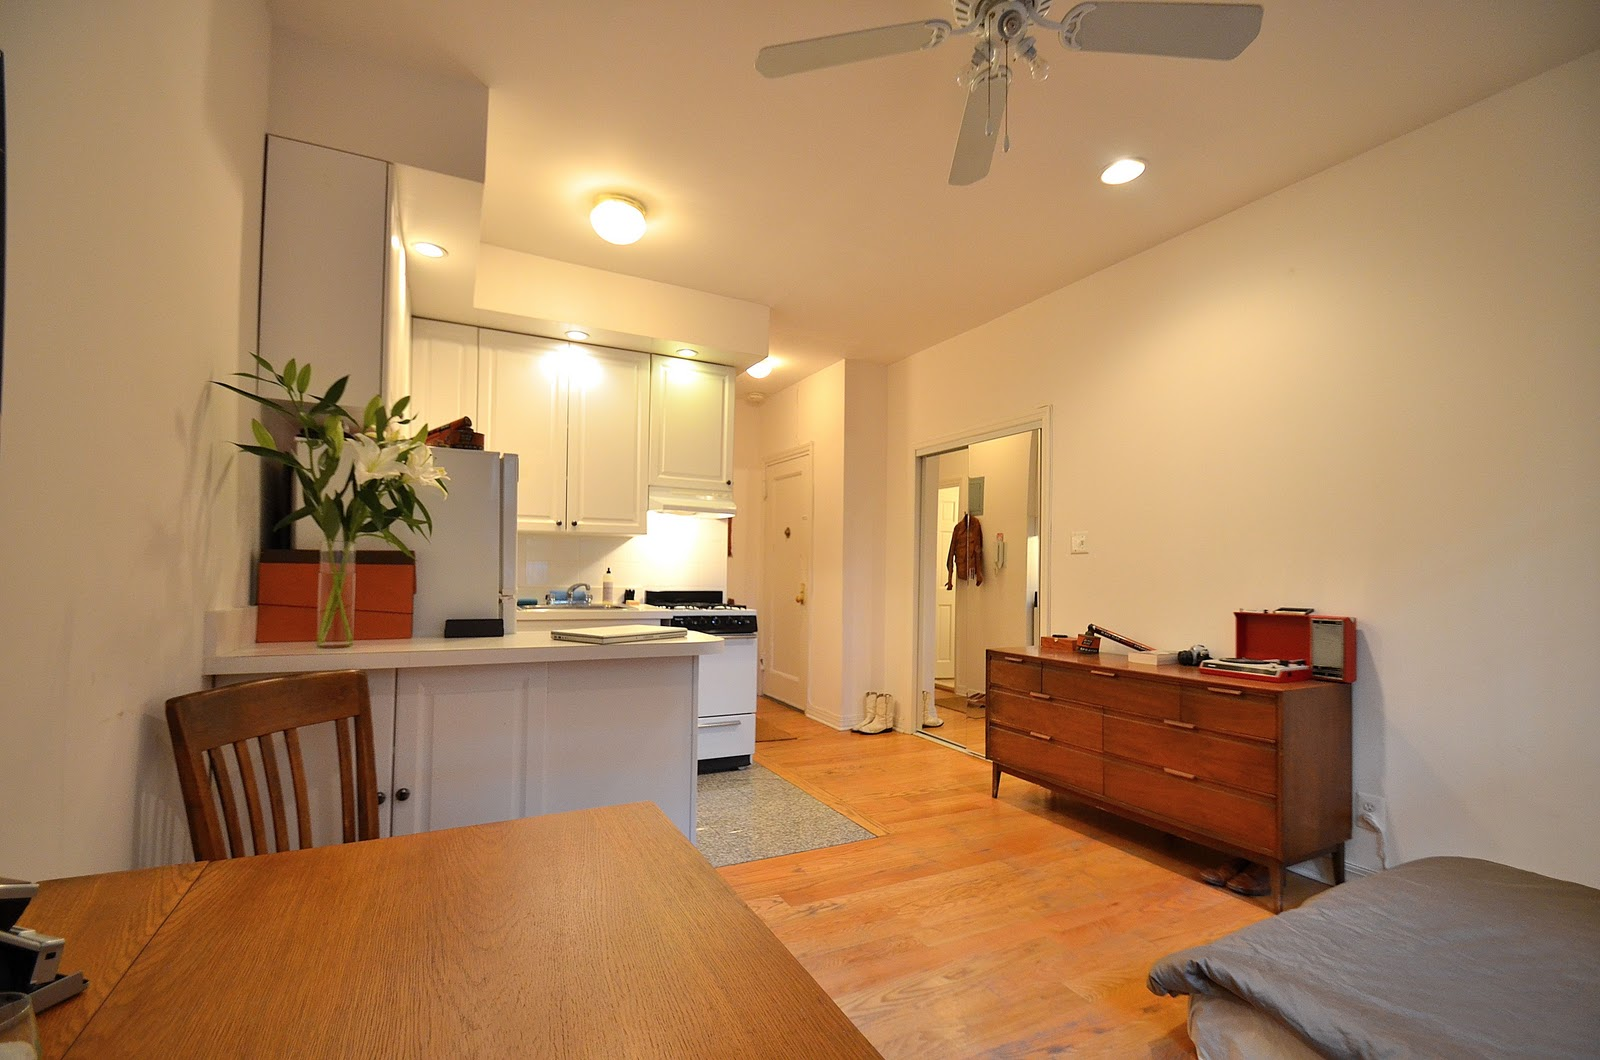 Basement Apartment For Rent New York